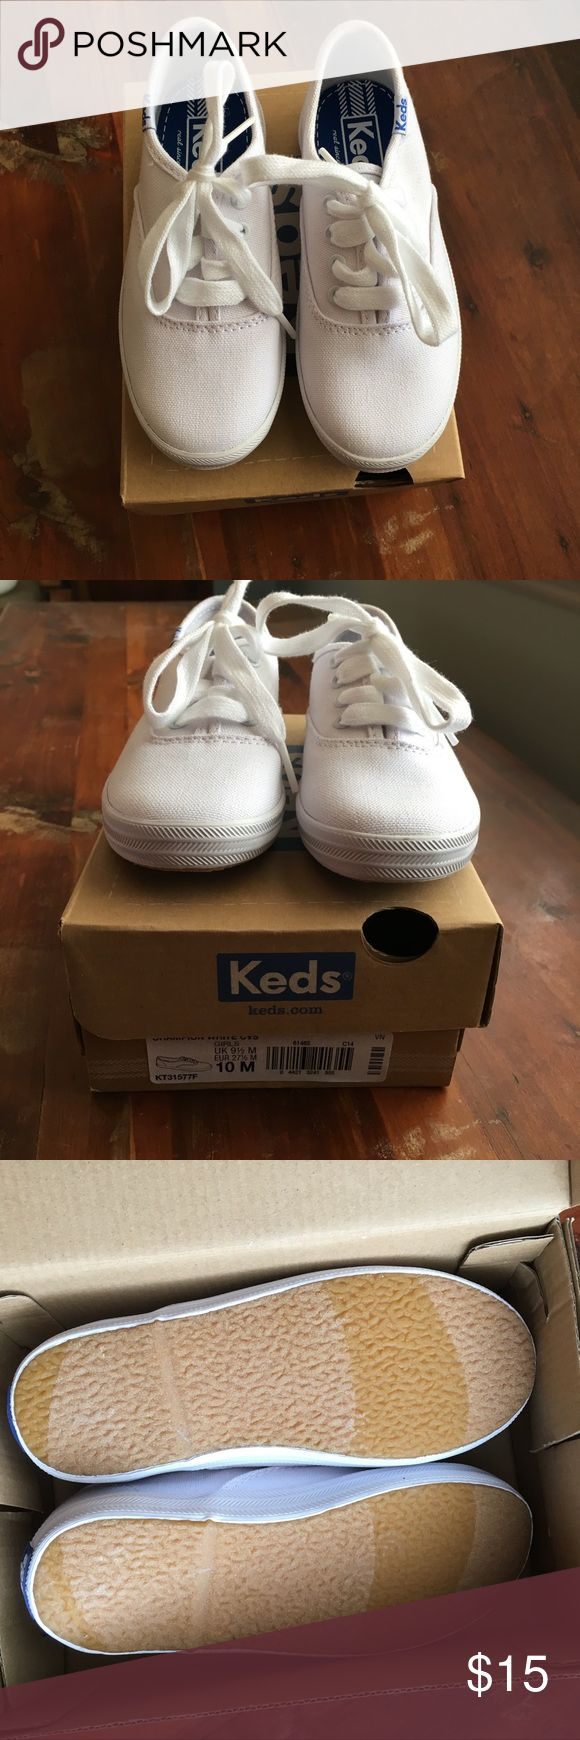 NWT Kids White Keds Classic white keds. Great for fall dressing up as a cheerleader and into spring with cute dresses. New worn. Smoke and pet free home. Keds Shoes Sneakers